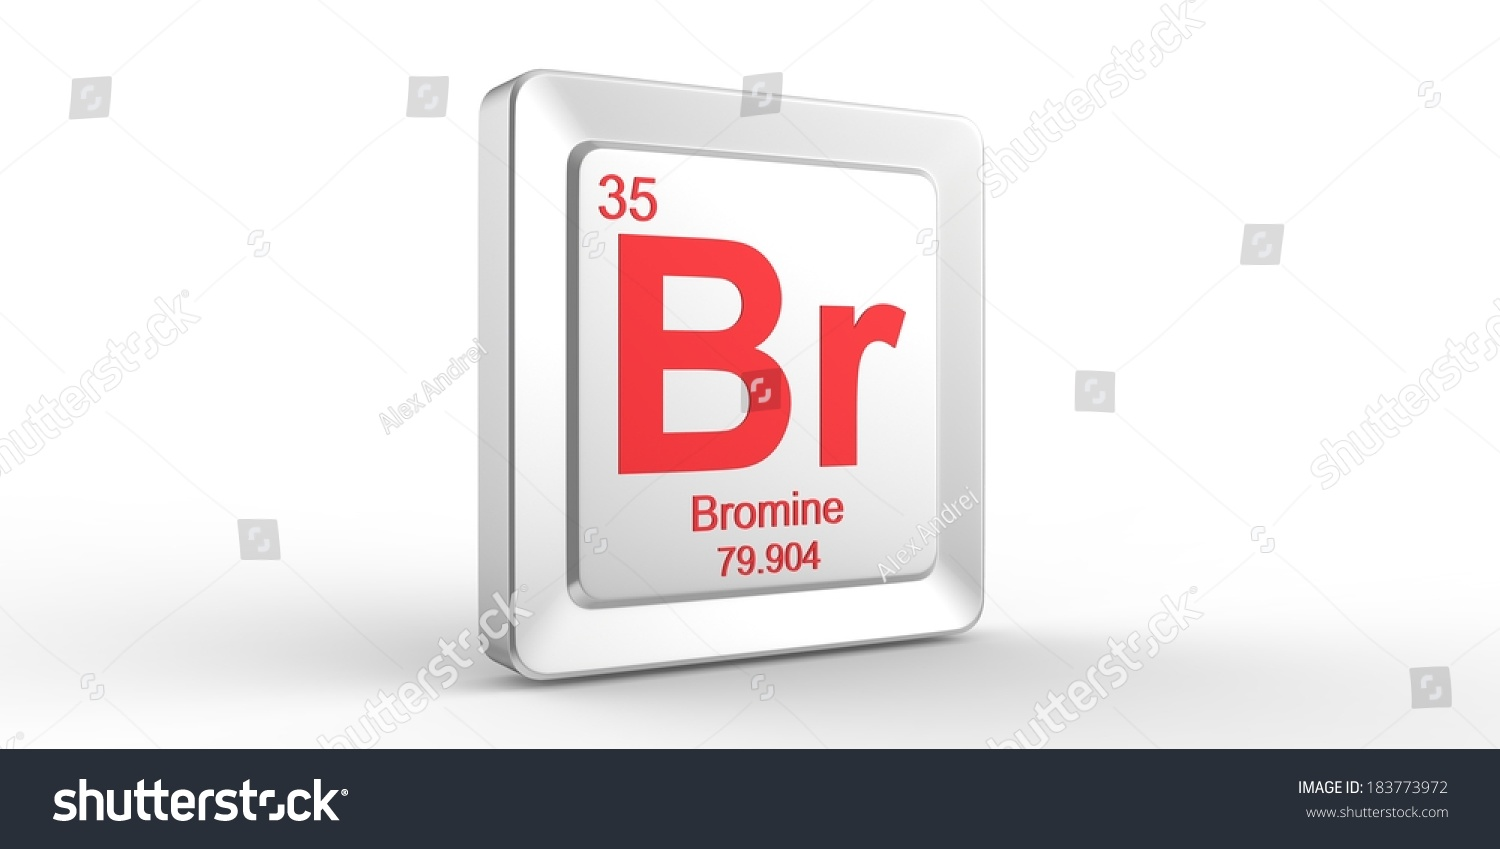 Br symbol 35 material bromine chemical stock illustration br symbol 35 material for bromine chemical element of the periodic table biocorpaavc